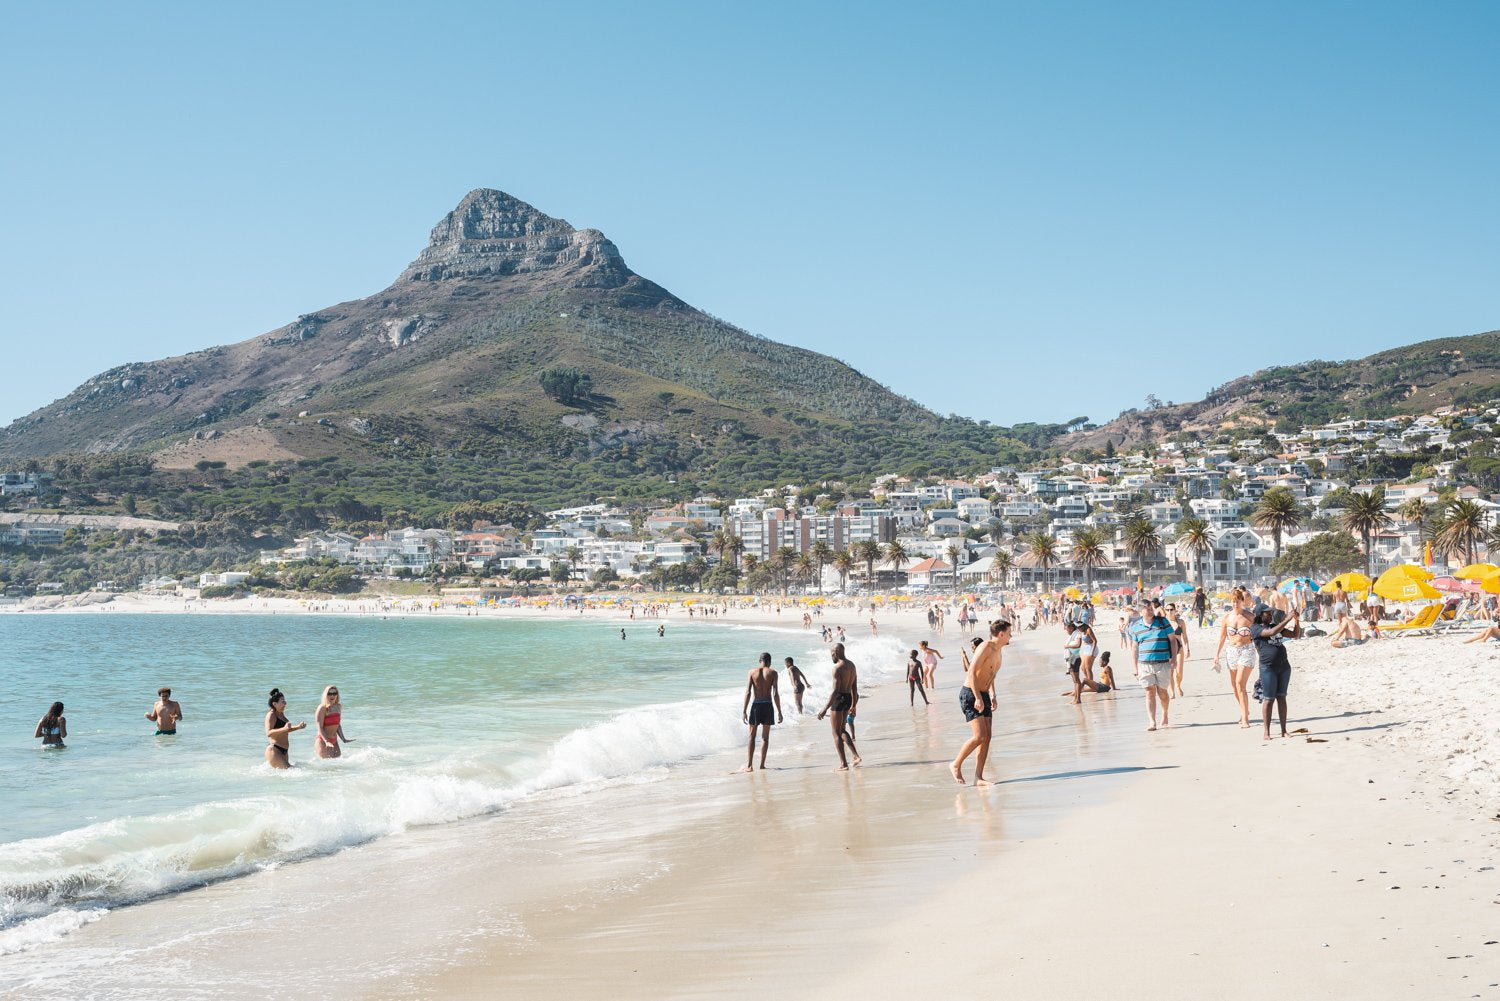 People swimming and playing on Camps Bay Beach below the lions head